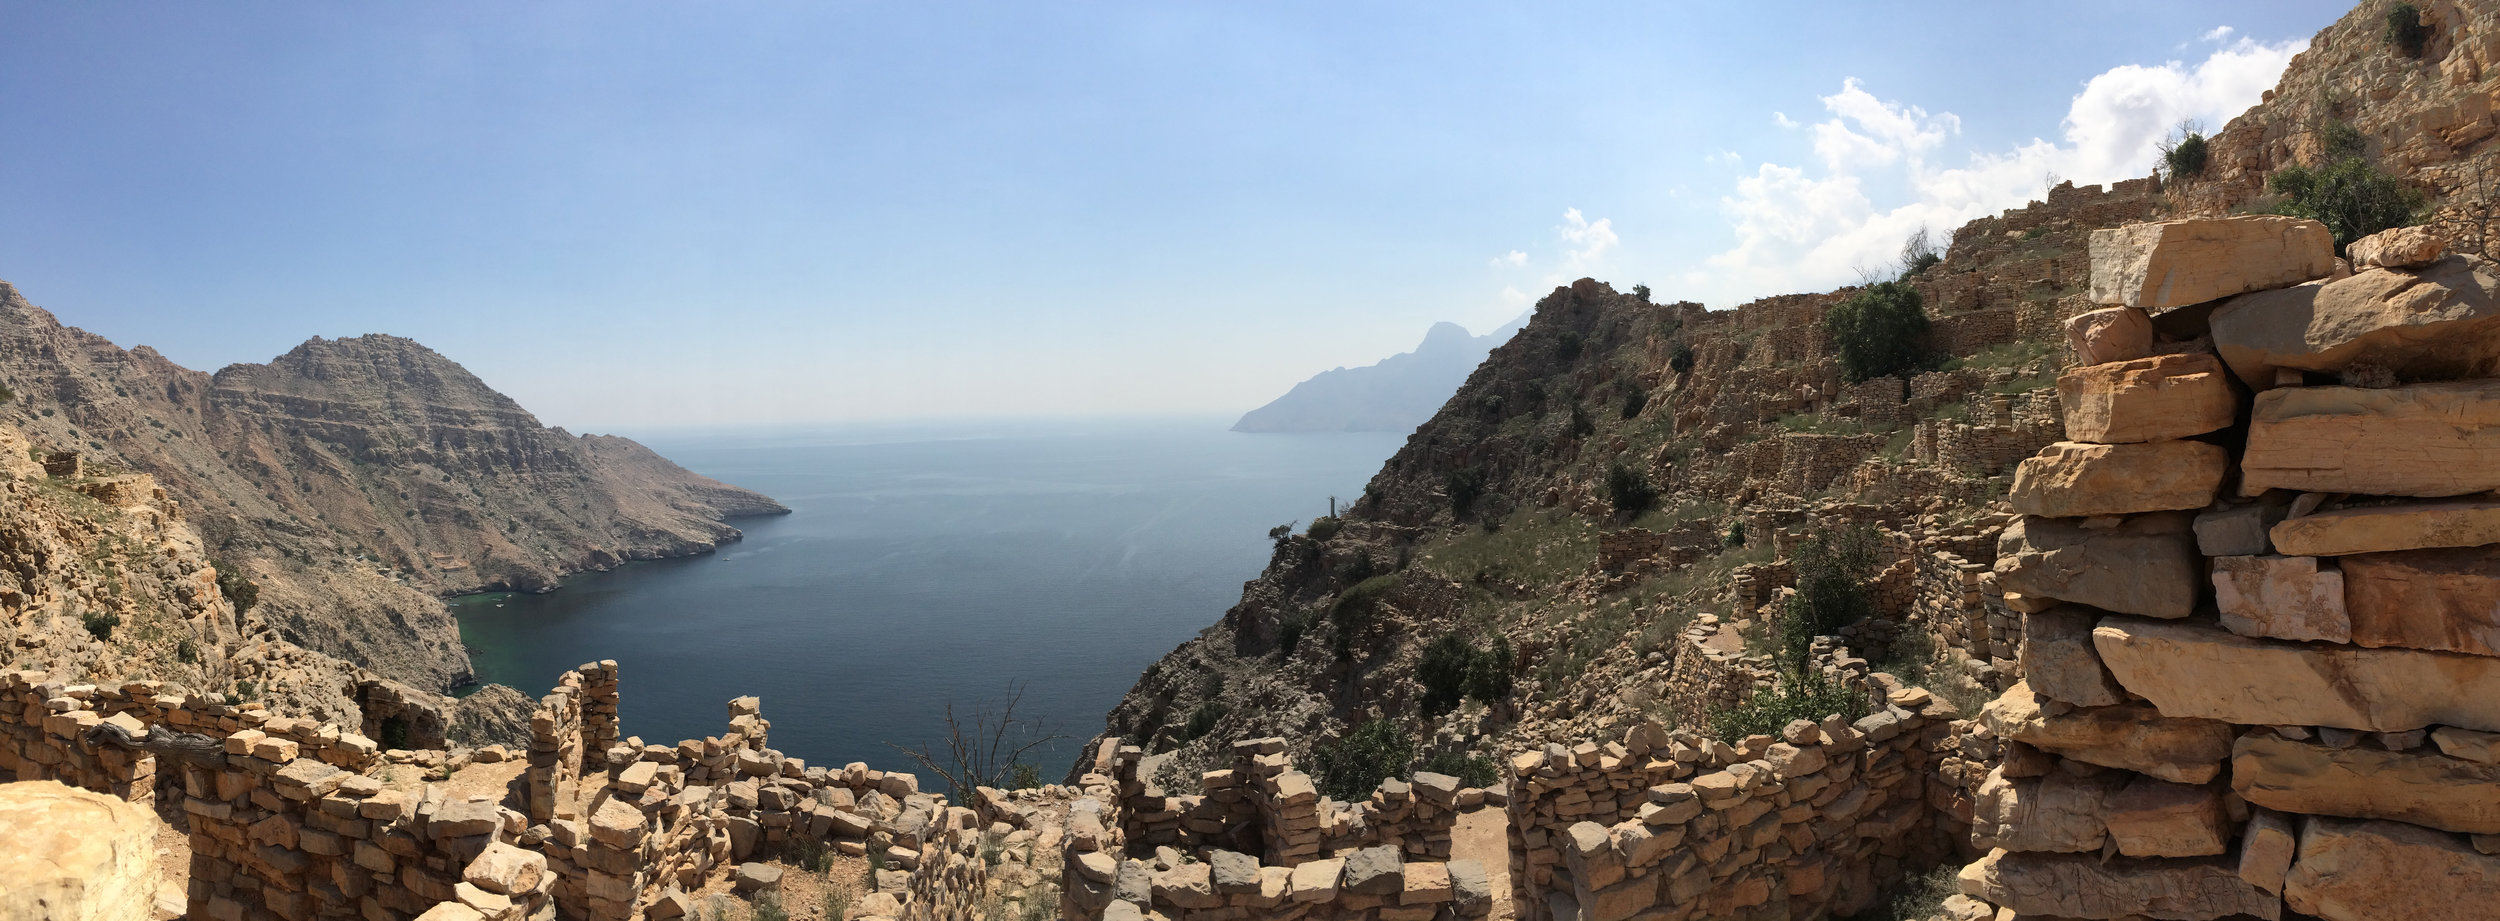 Panoramic views while trekking over a mountain on the  Musandam Peninsula in Oman with Absolute Adventure